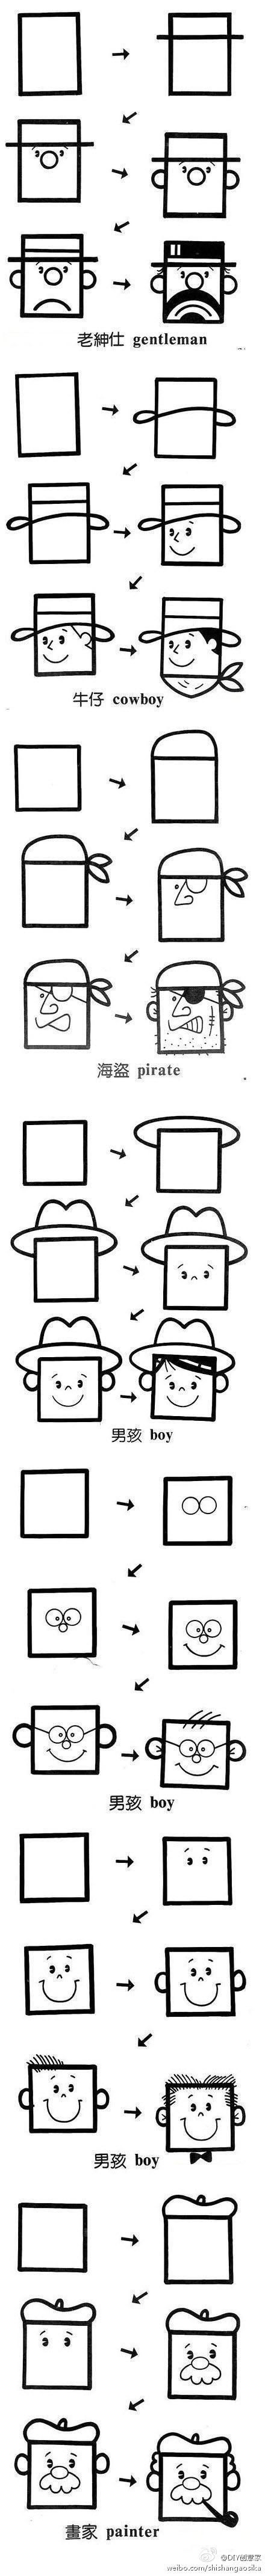 How to draw square faces. Great for block people